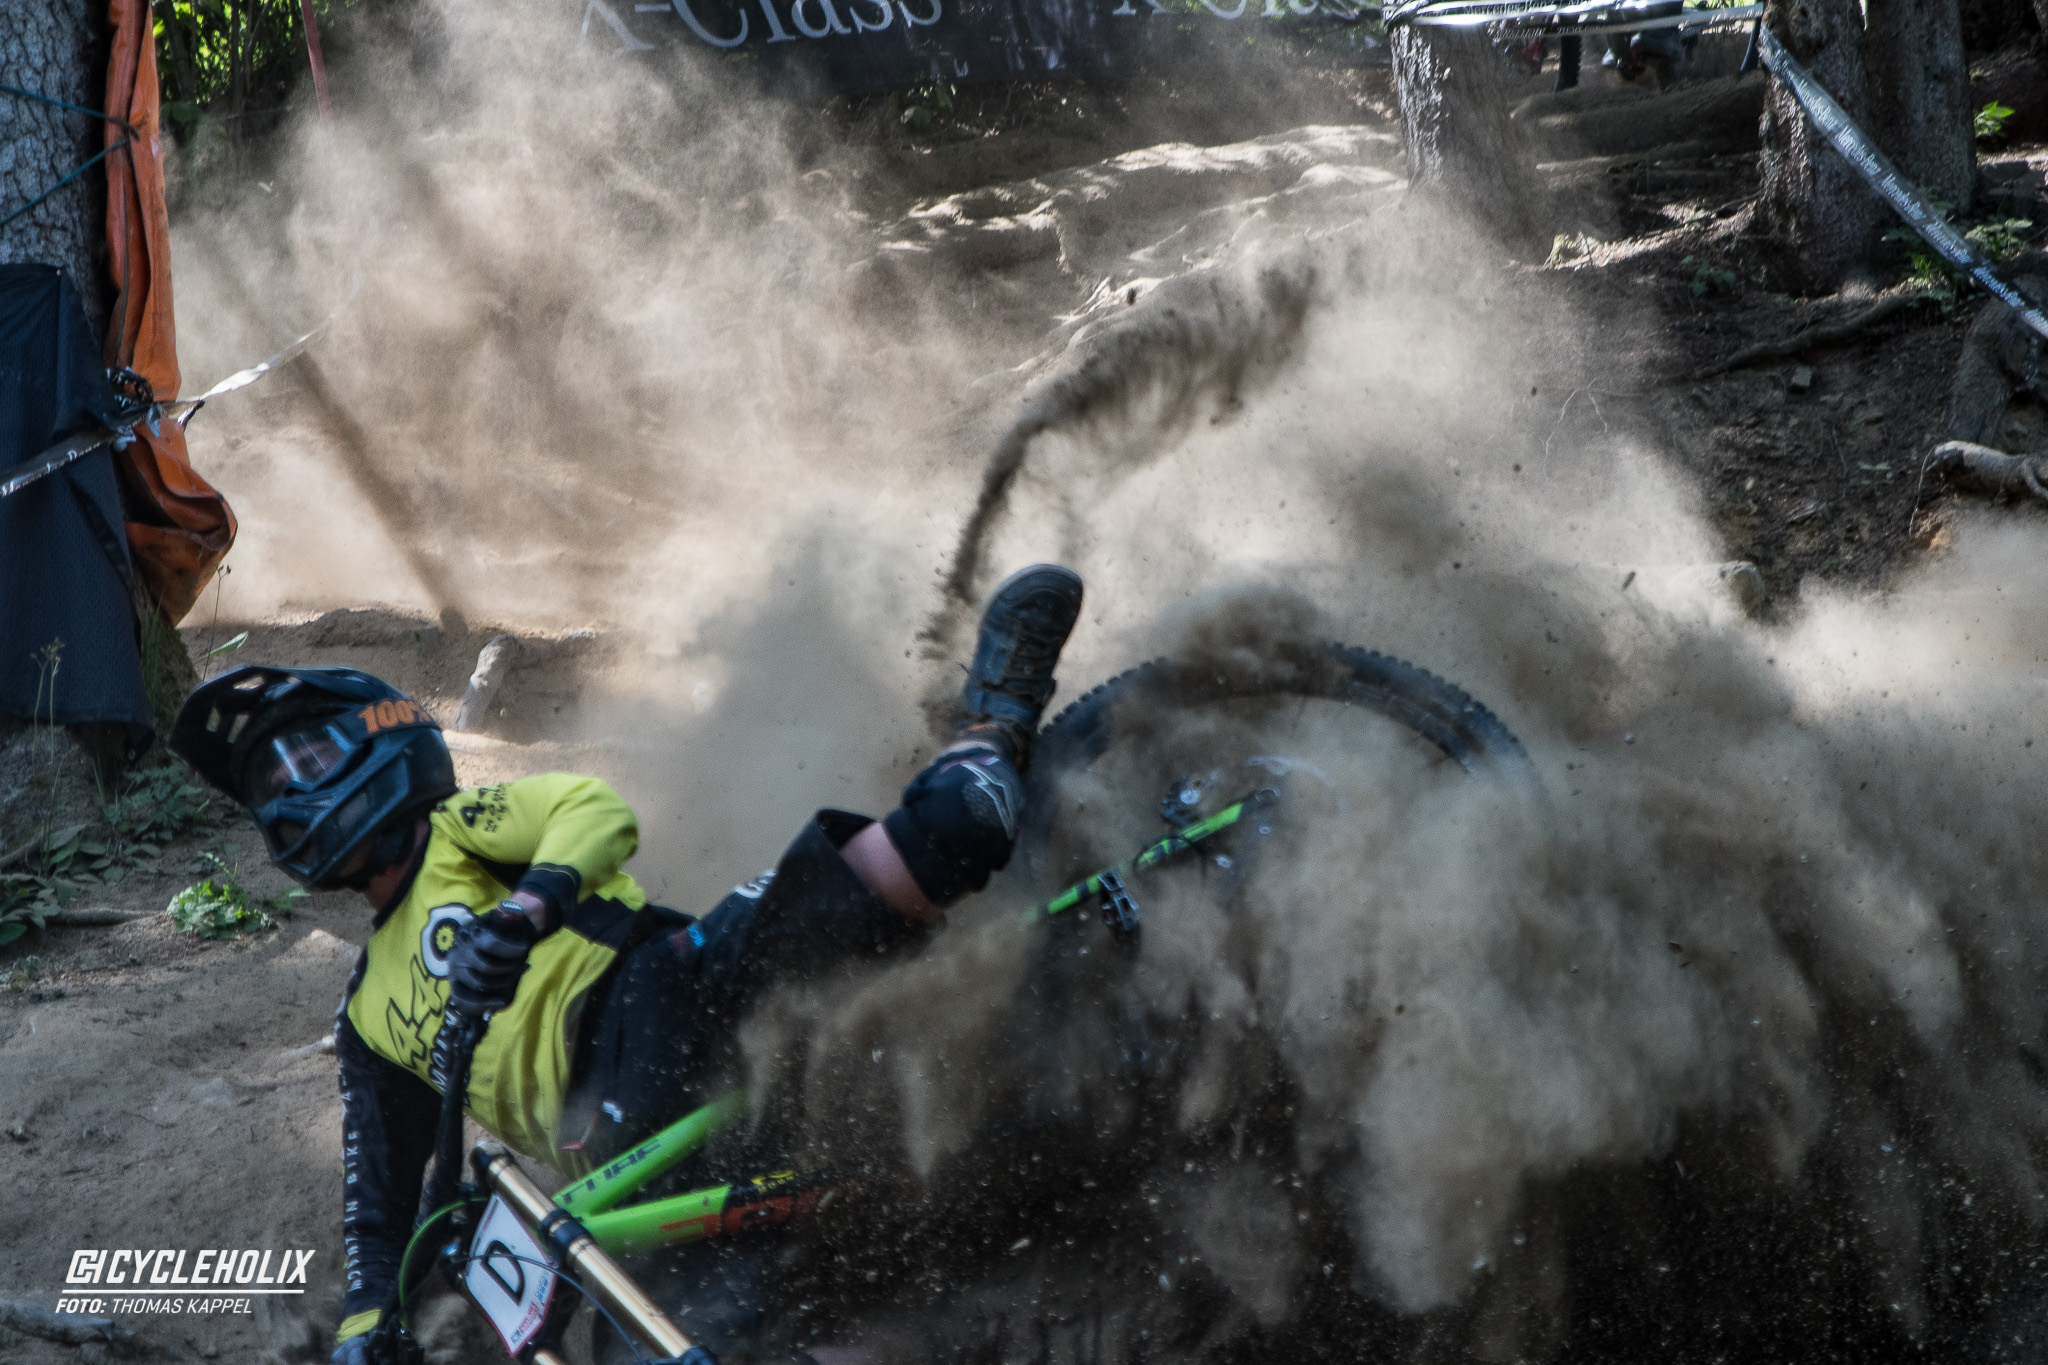 2019 Downhill Worldcup Leogang Finale Action 4 Cycleholix